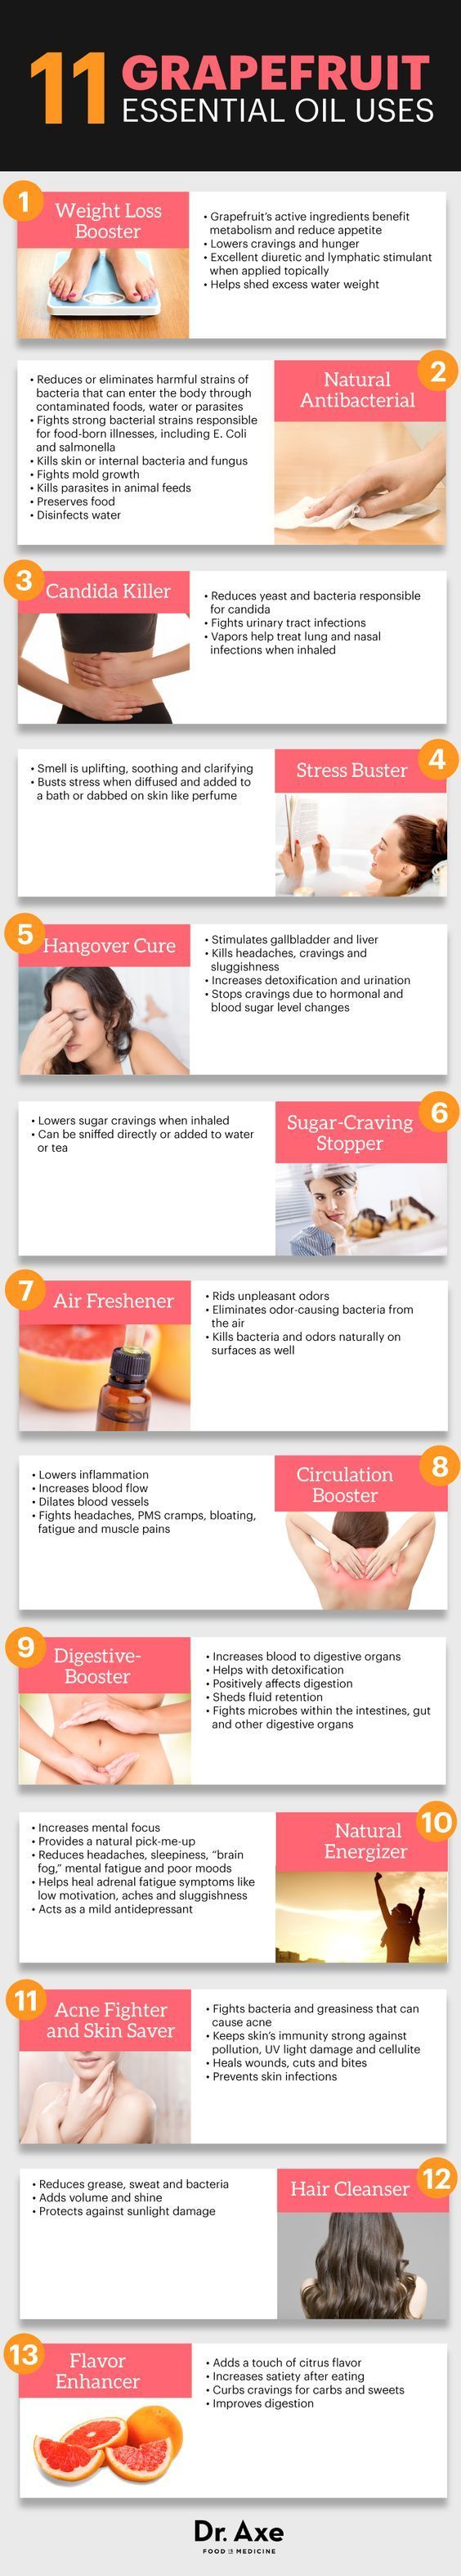 Grapefruit essential oil uses - Dr. Axe http://www.draxe.com #health #holistic #natural